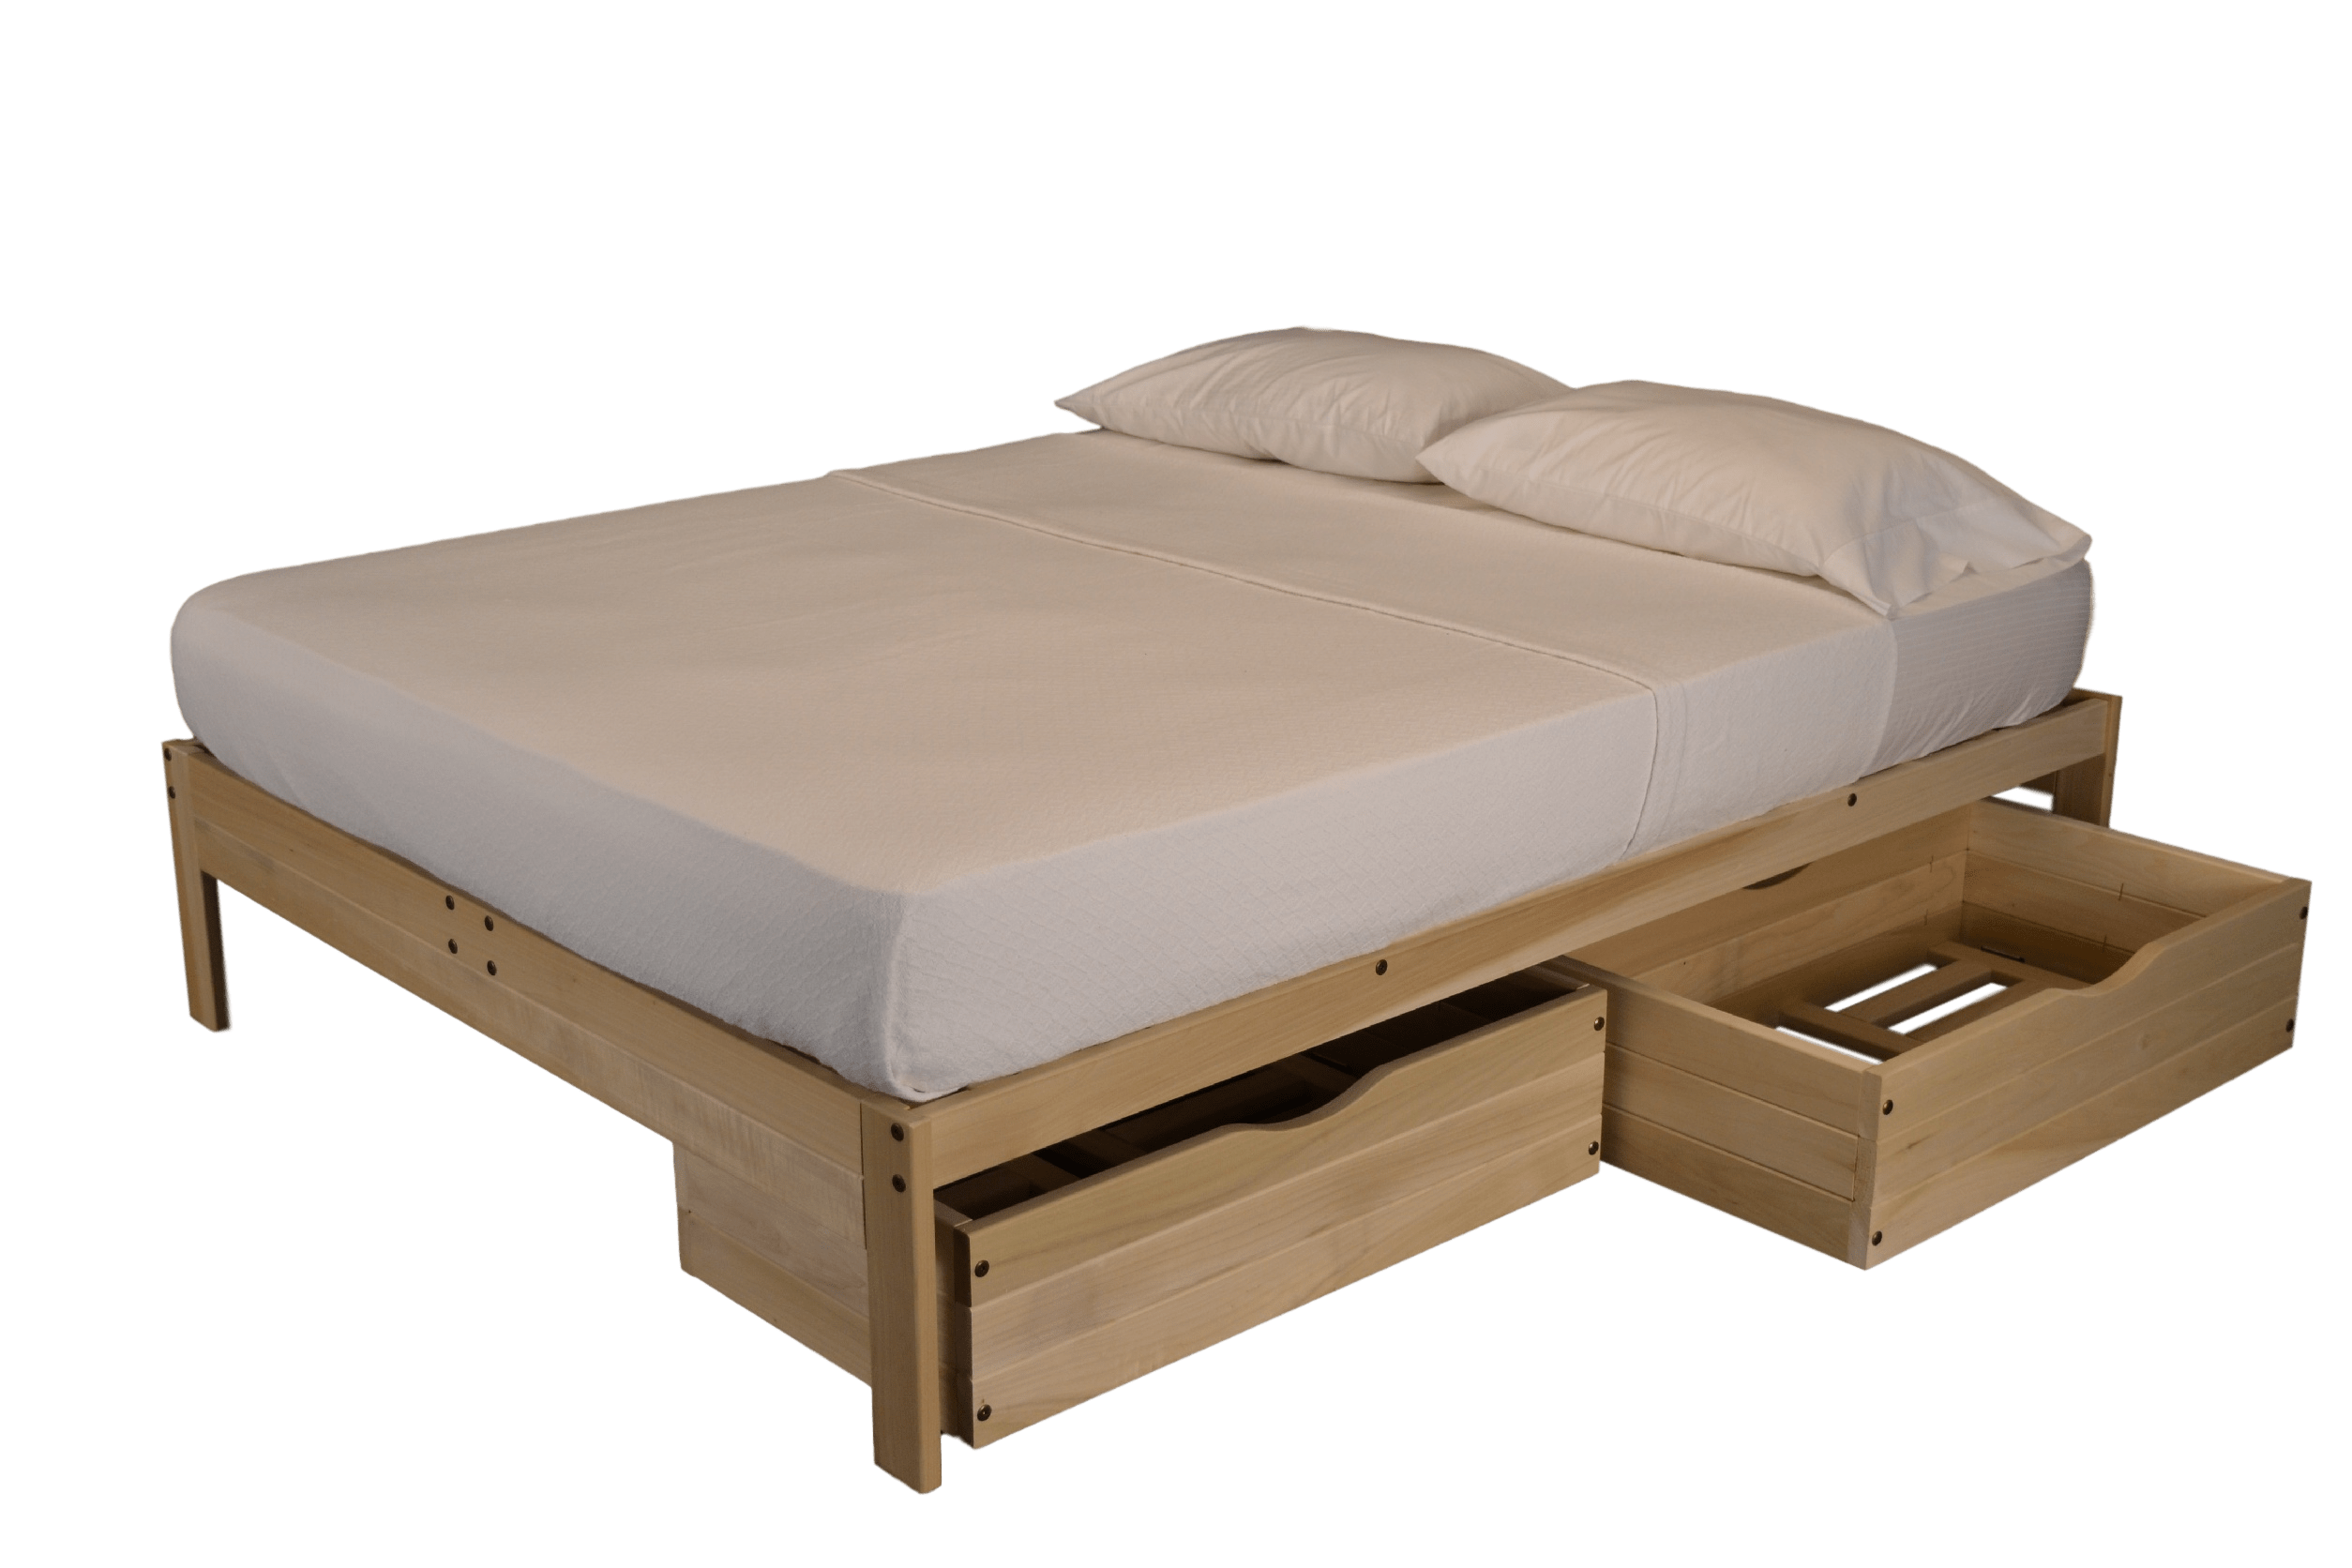 Unfinished Platform Bed Without Headboard The Futon